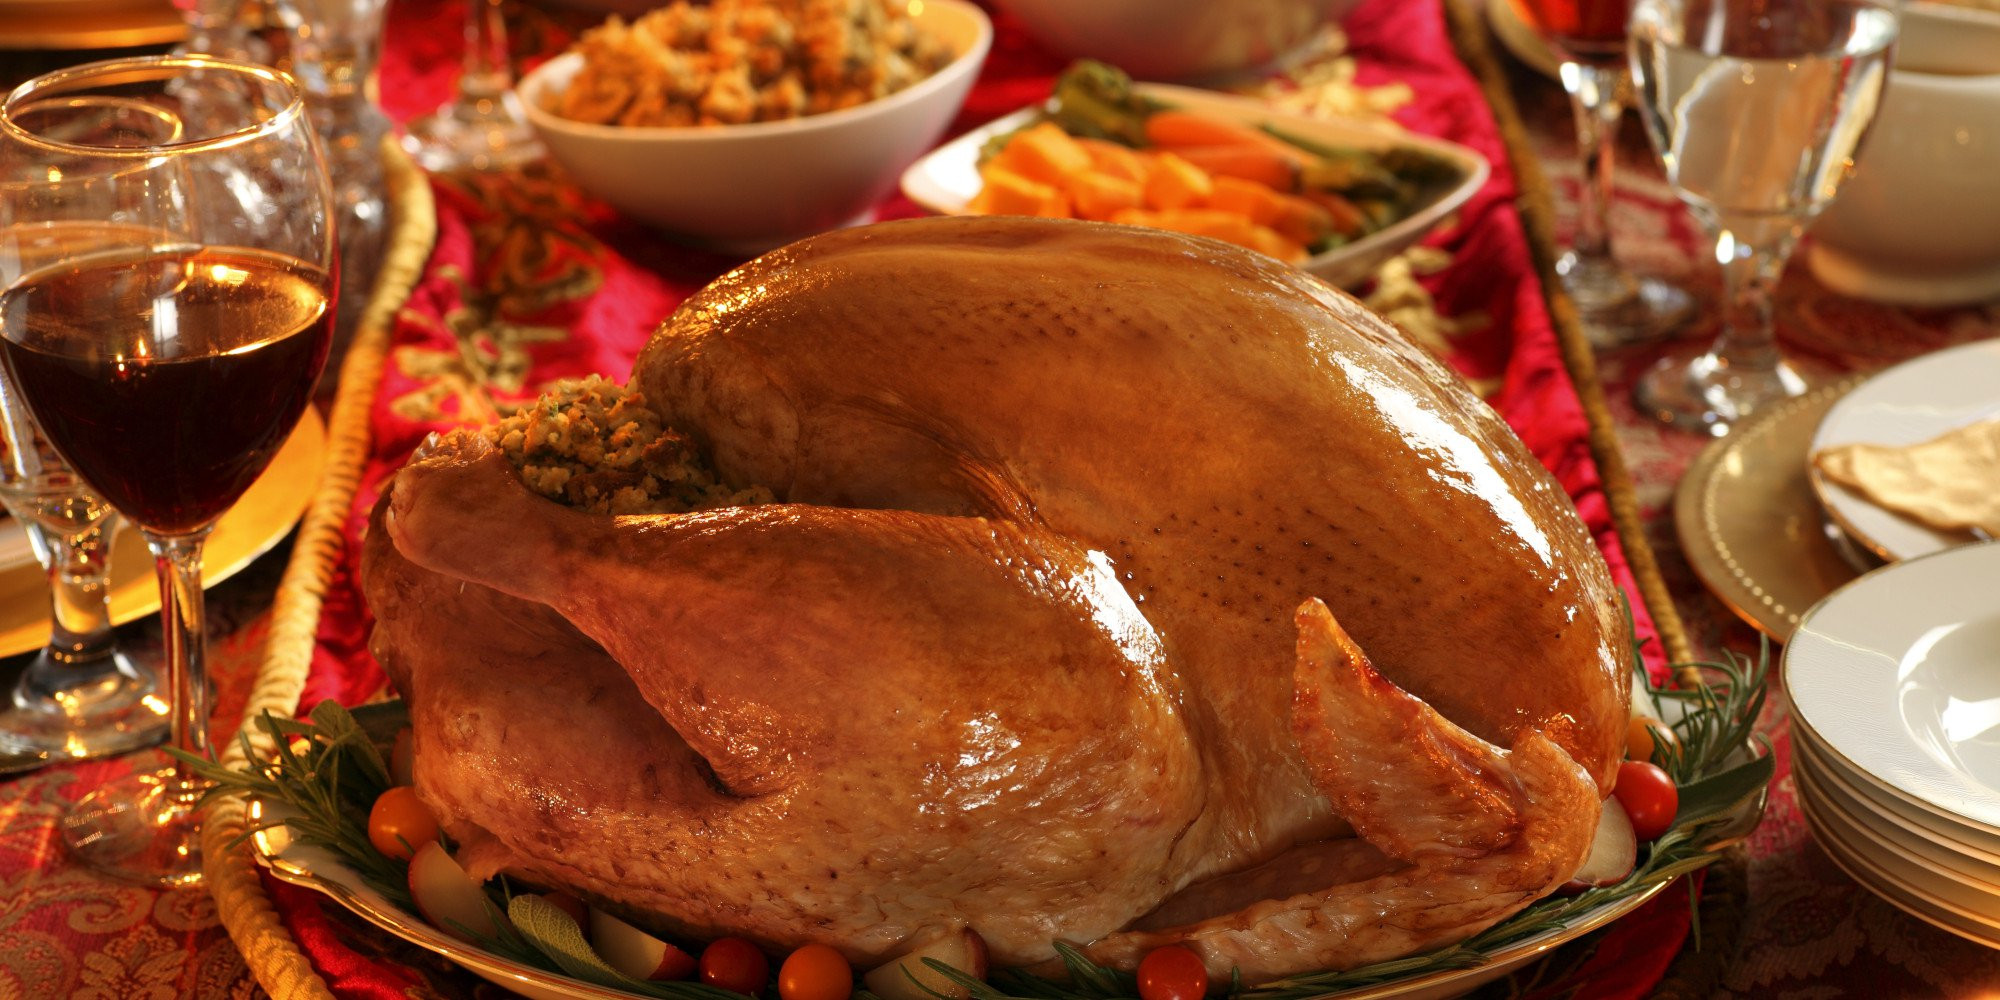 Restaurants That Serve Thanksgiving Dinner  Can't Cook R4L s Top 5 Restaurants Serving Thanksgiving